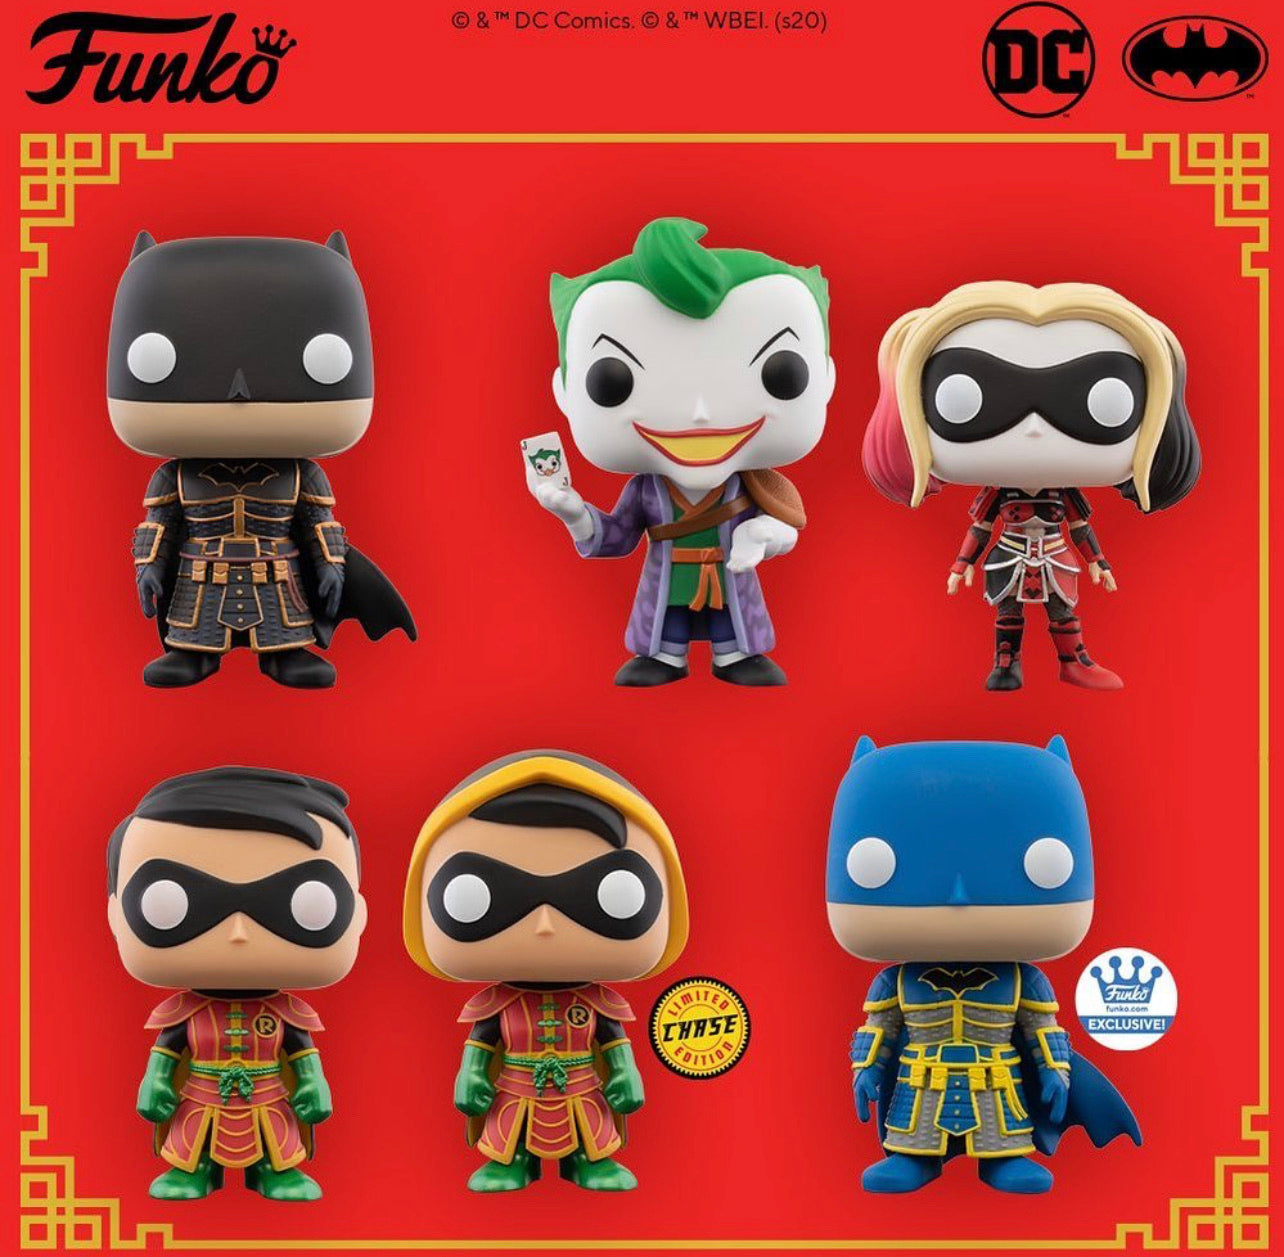 Pop! Heroes: DC Imperial Palace Wave 1 (Preorder)